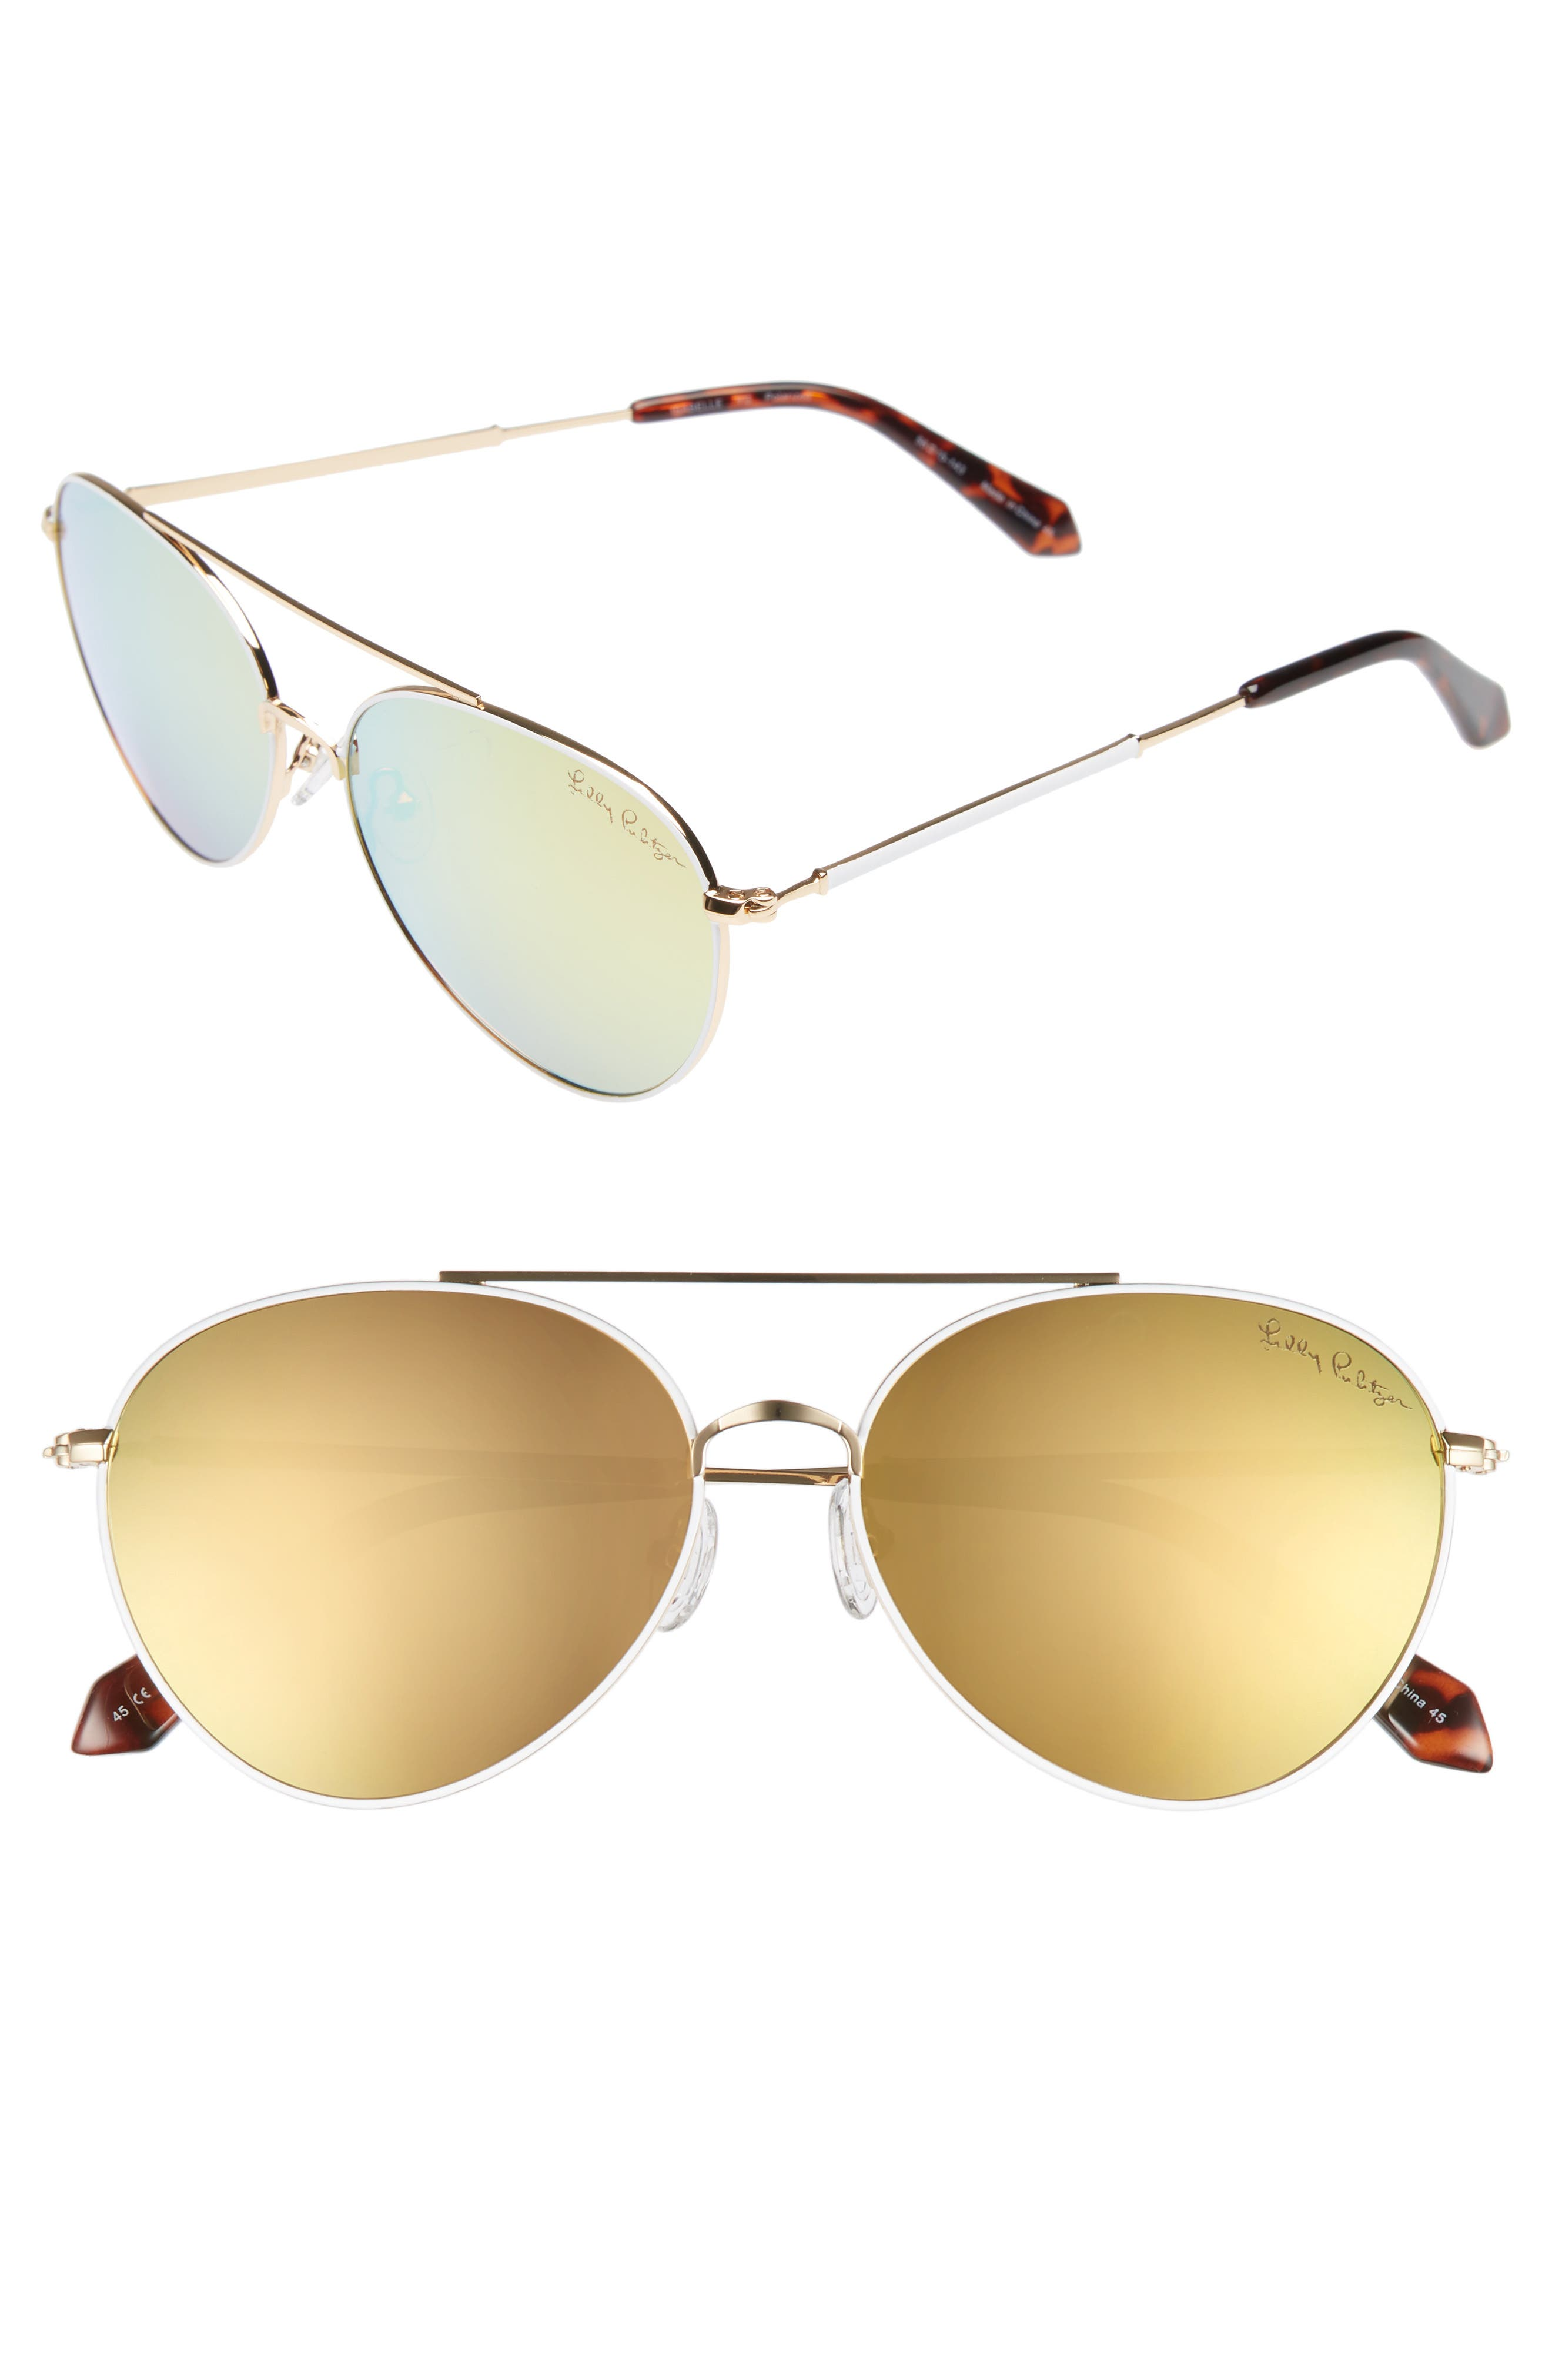 Isabelle 56mm Polarized Metal Aviator Sunglasses,                         Main,                         color, Gold/ Gold